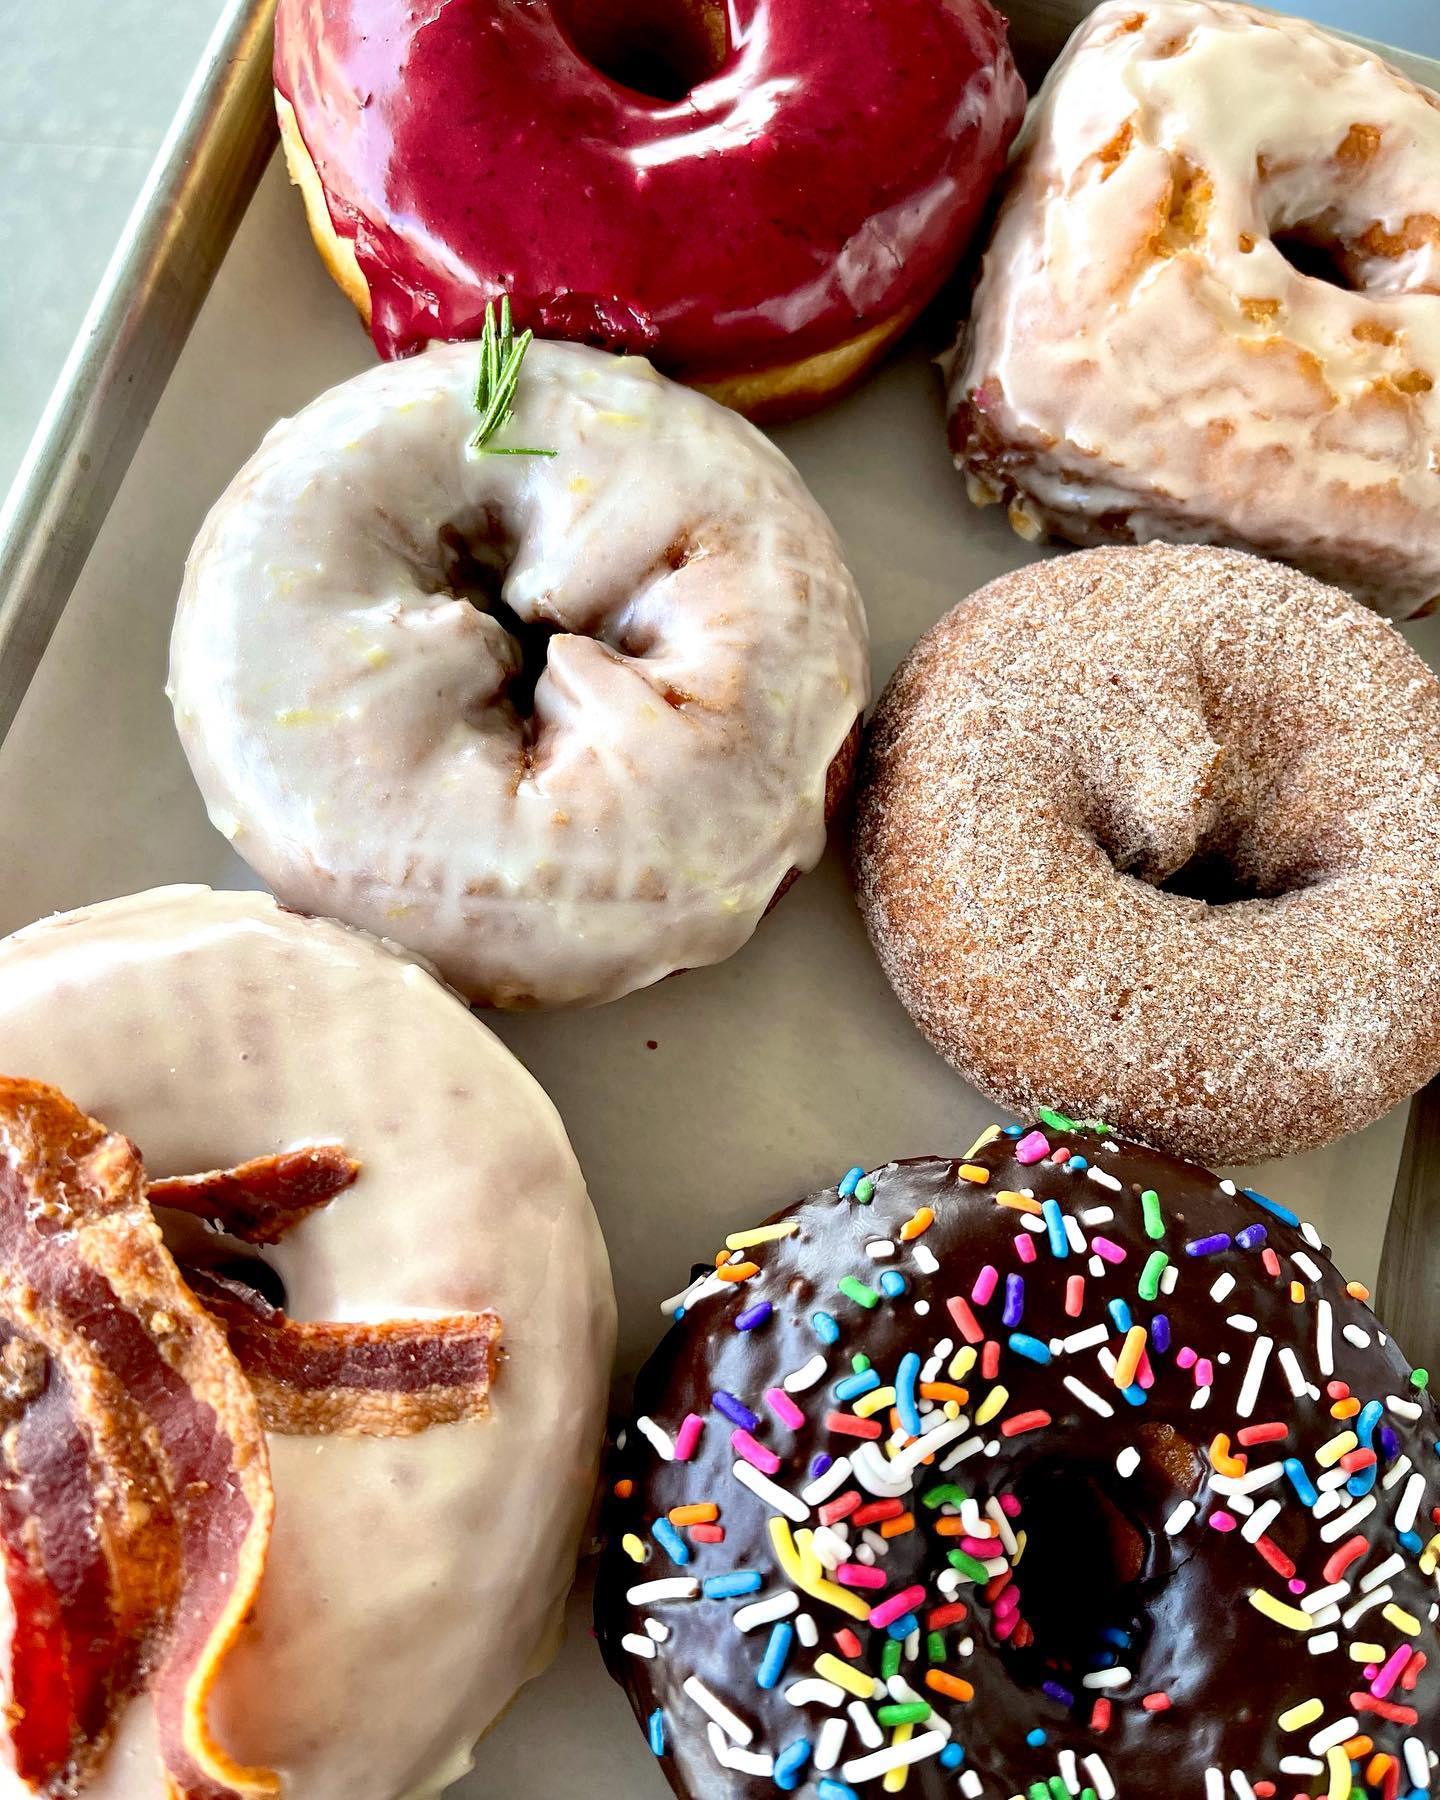 Delicious donuts with different coatings and toppings